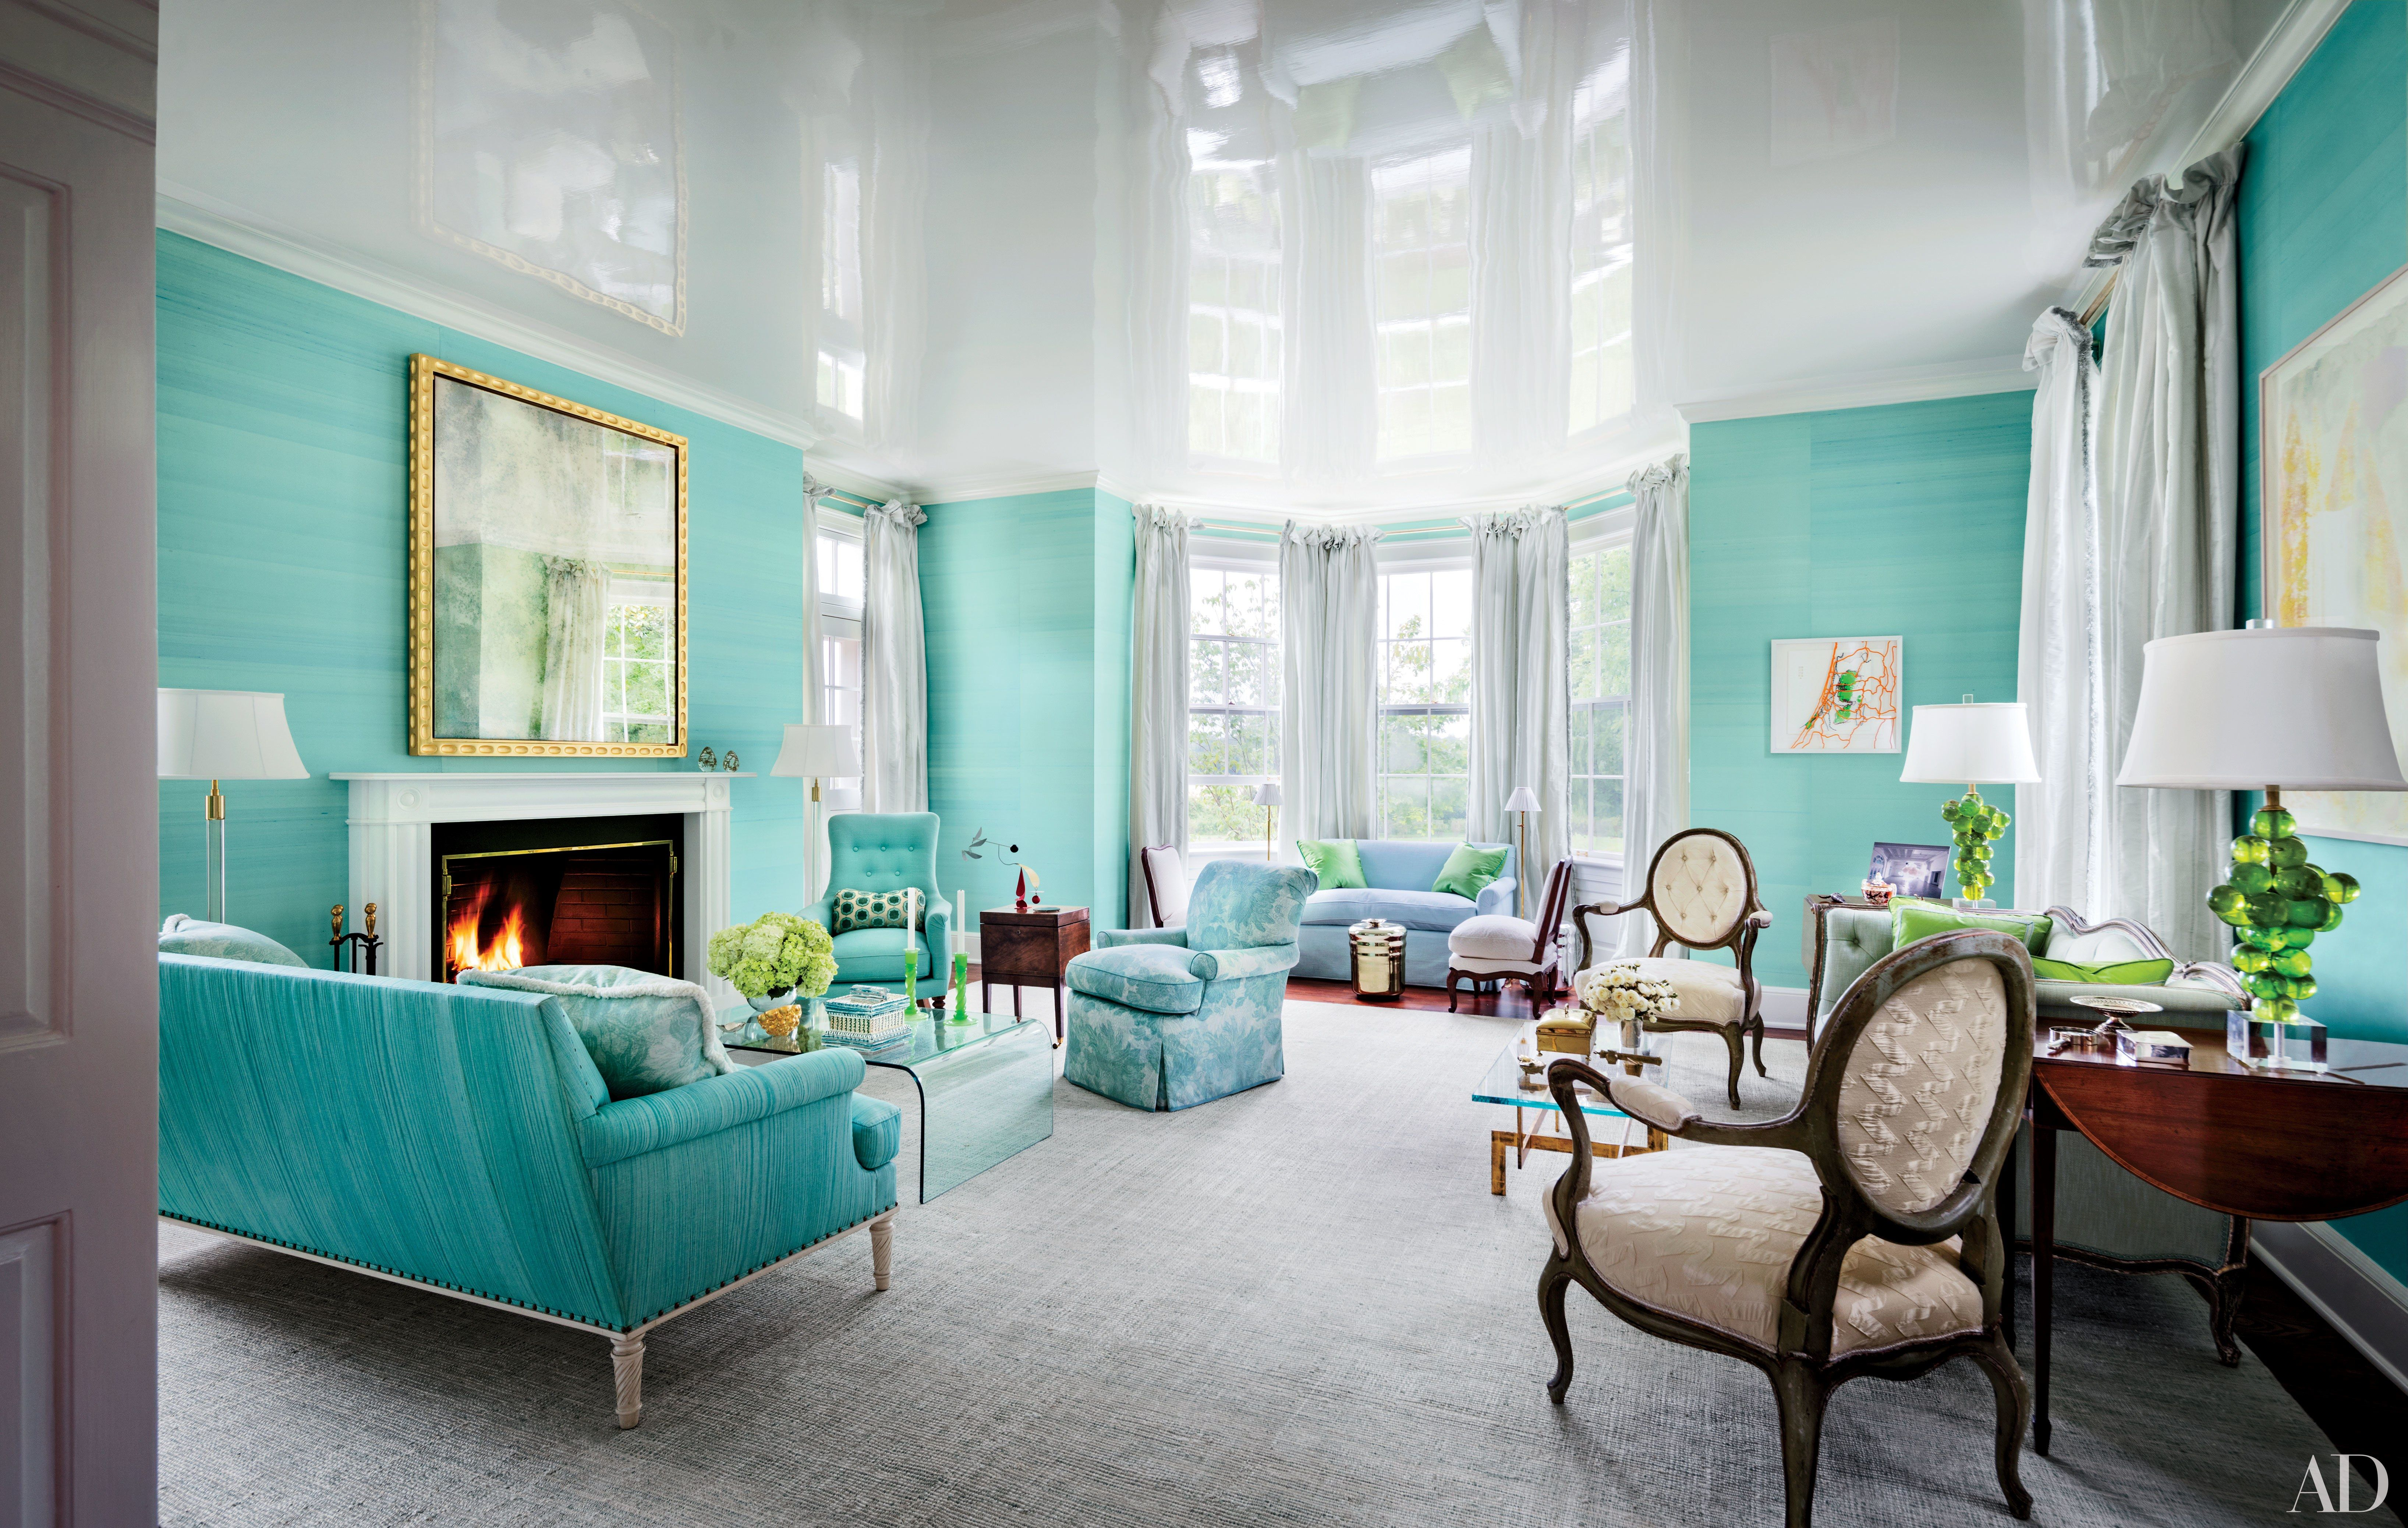 These Blue Green Rooms Are The Ultimate Serene Spaces. Beautiful Home  InteriorsThe FireplaceBay ...